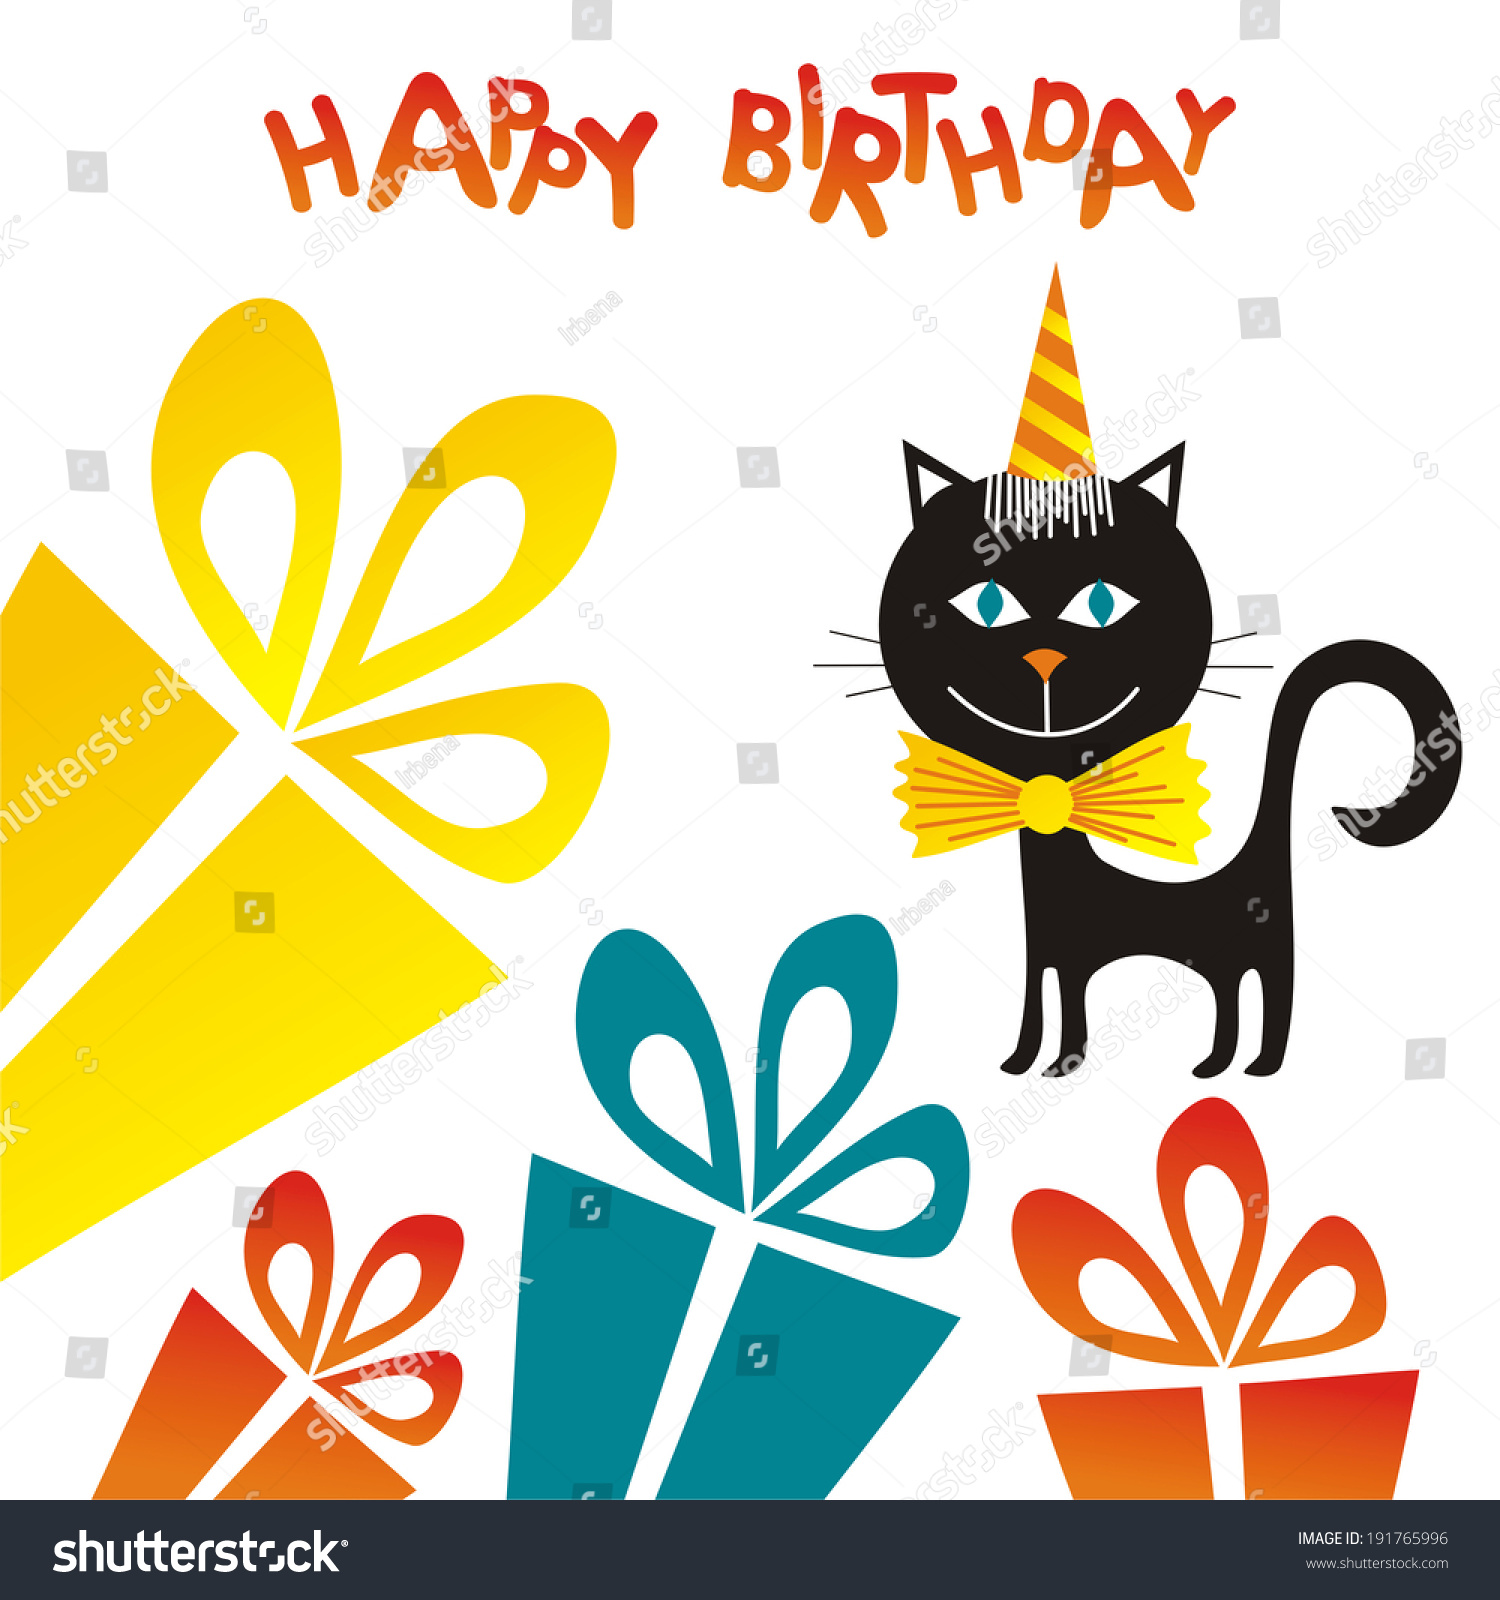 Happy Birthday Greeting Card Black Cat Stock Vector 191765996